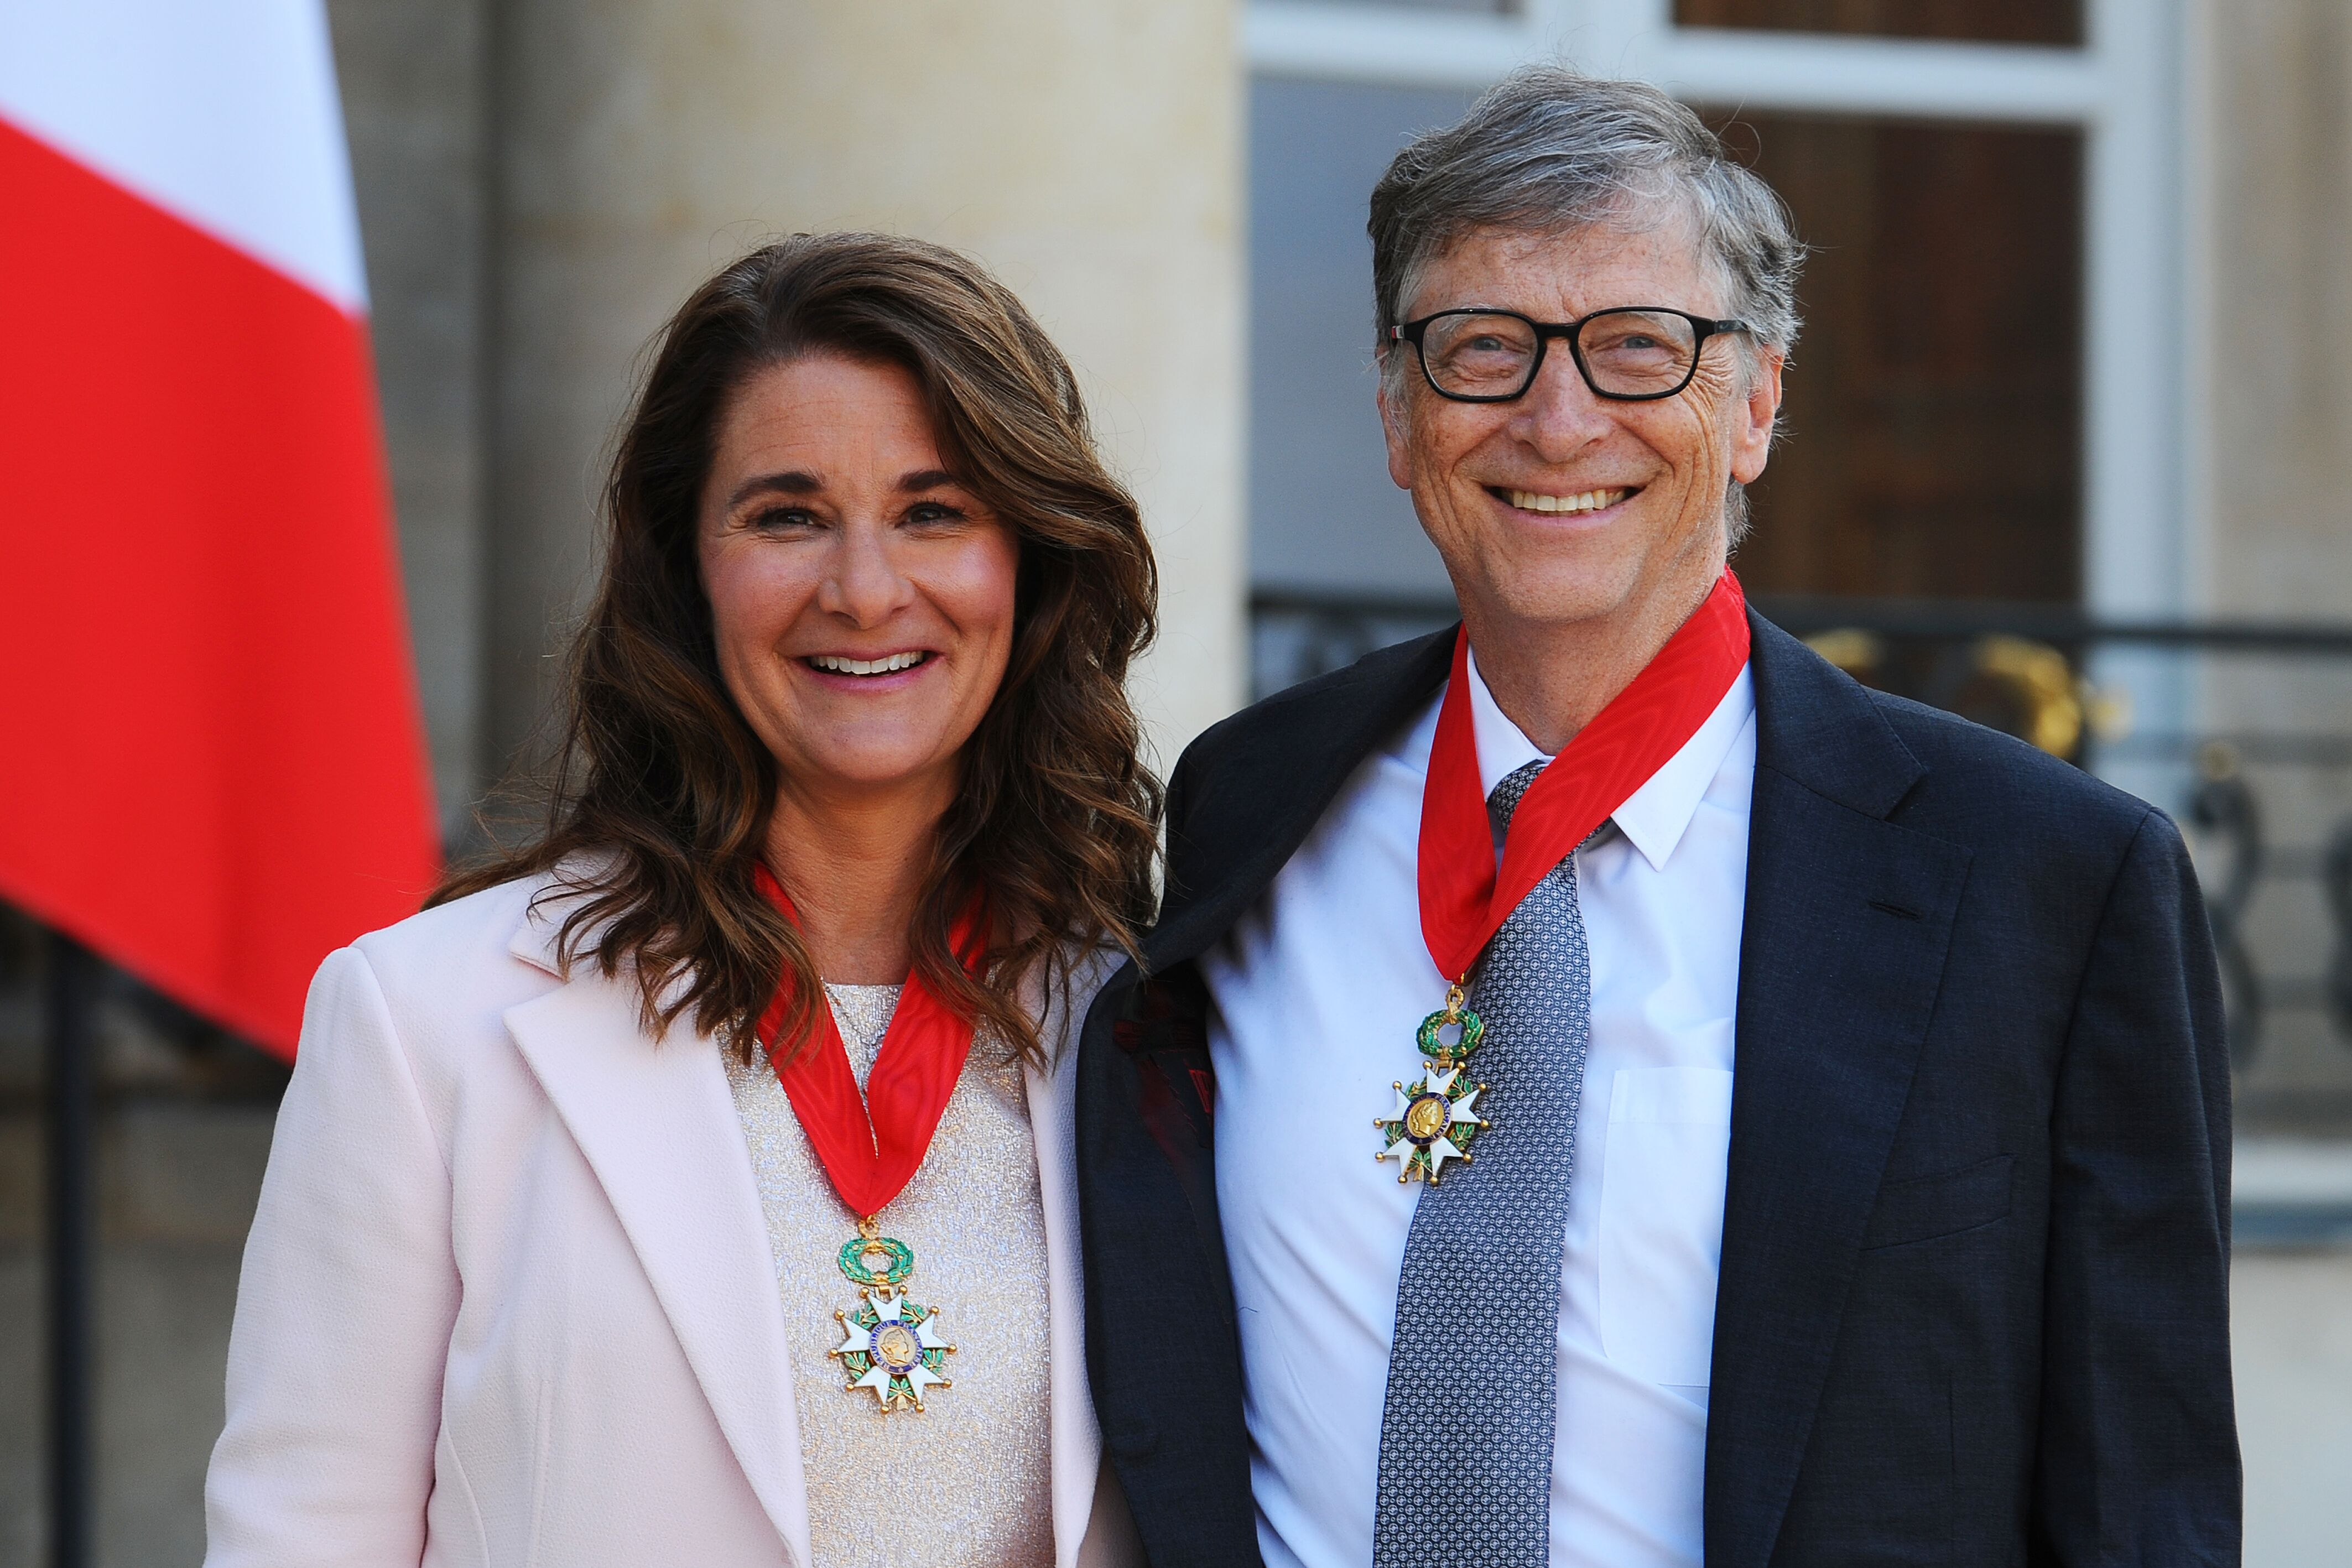 Bill and Melinda Gates pose in front of the Elysee Palace after receiving the award of Commander of the Legion of Honor by French President Francois Hollande on April 21, 2017 in Paris, France | Photo: Getty Images